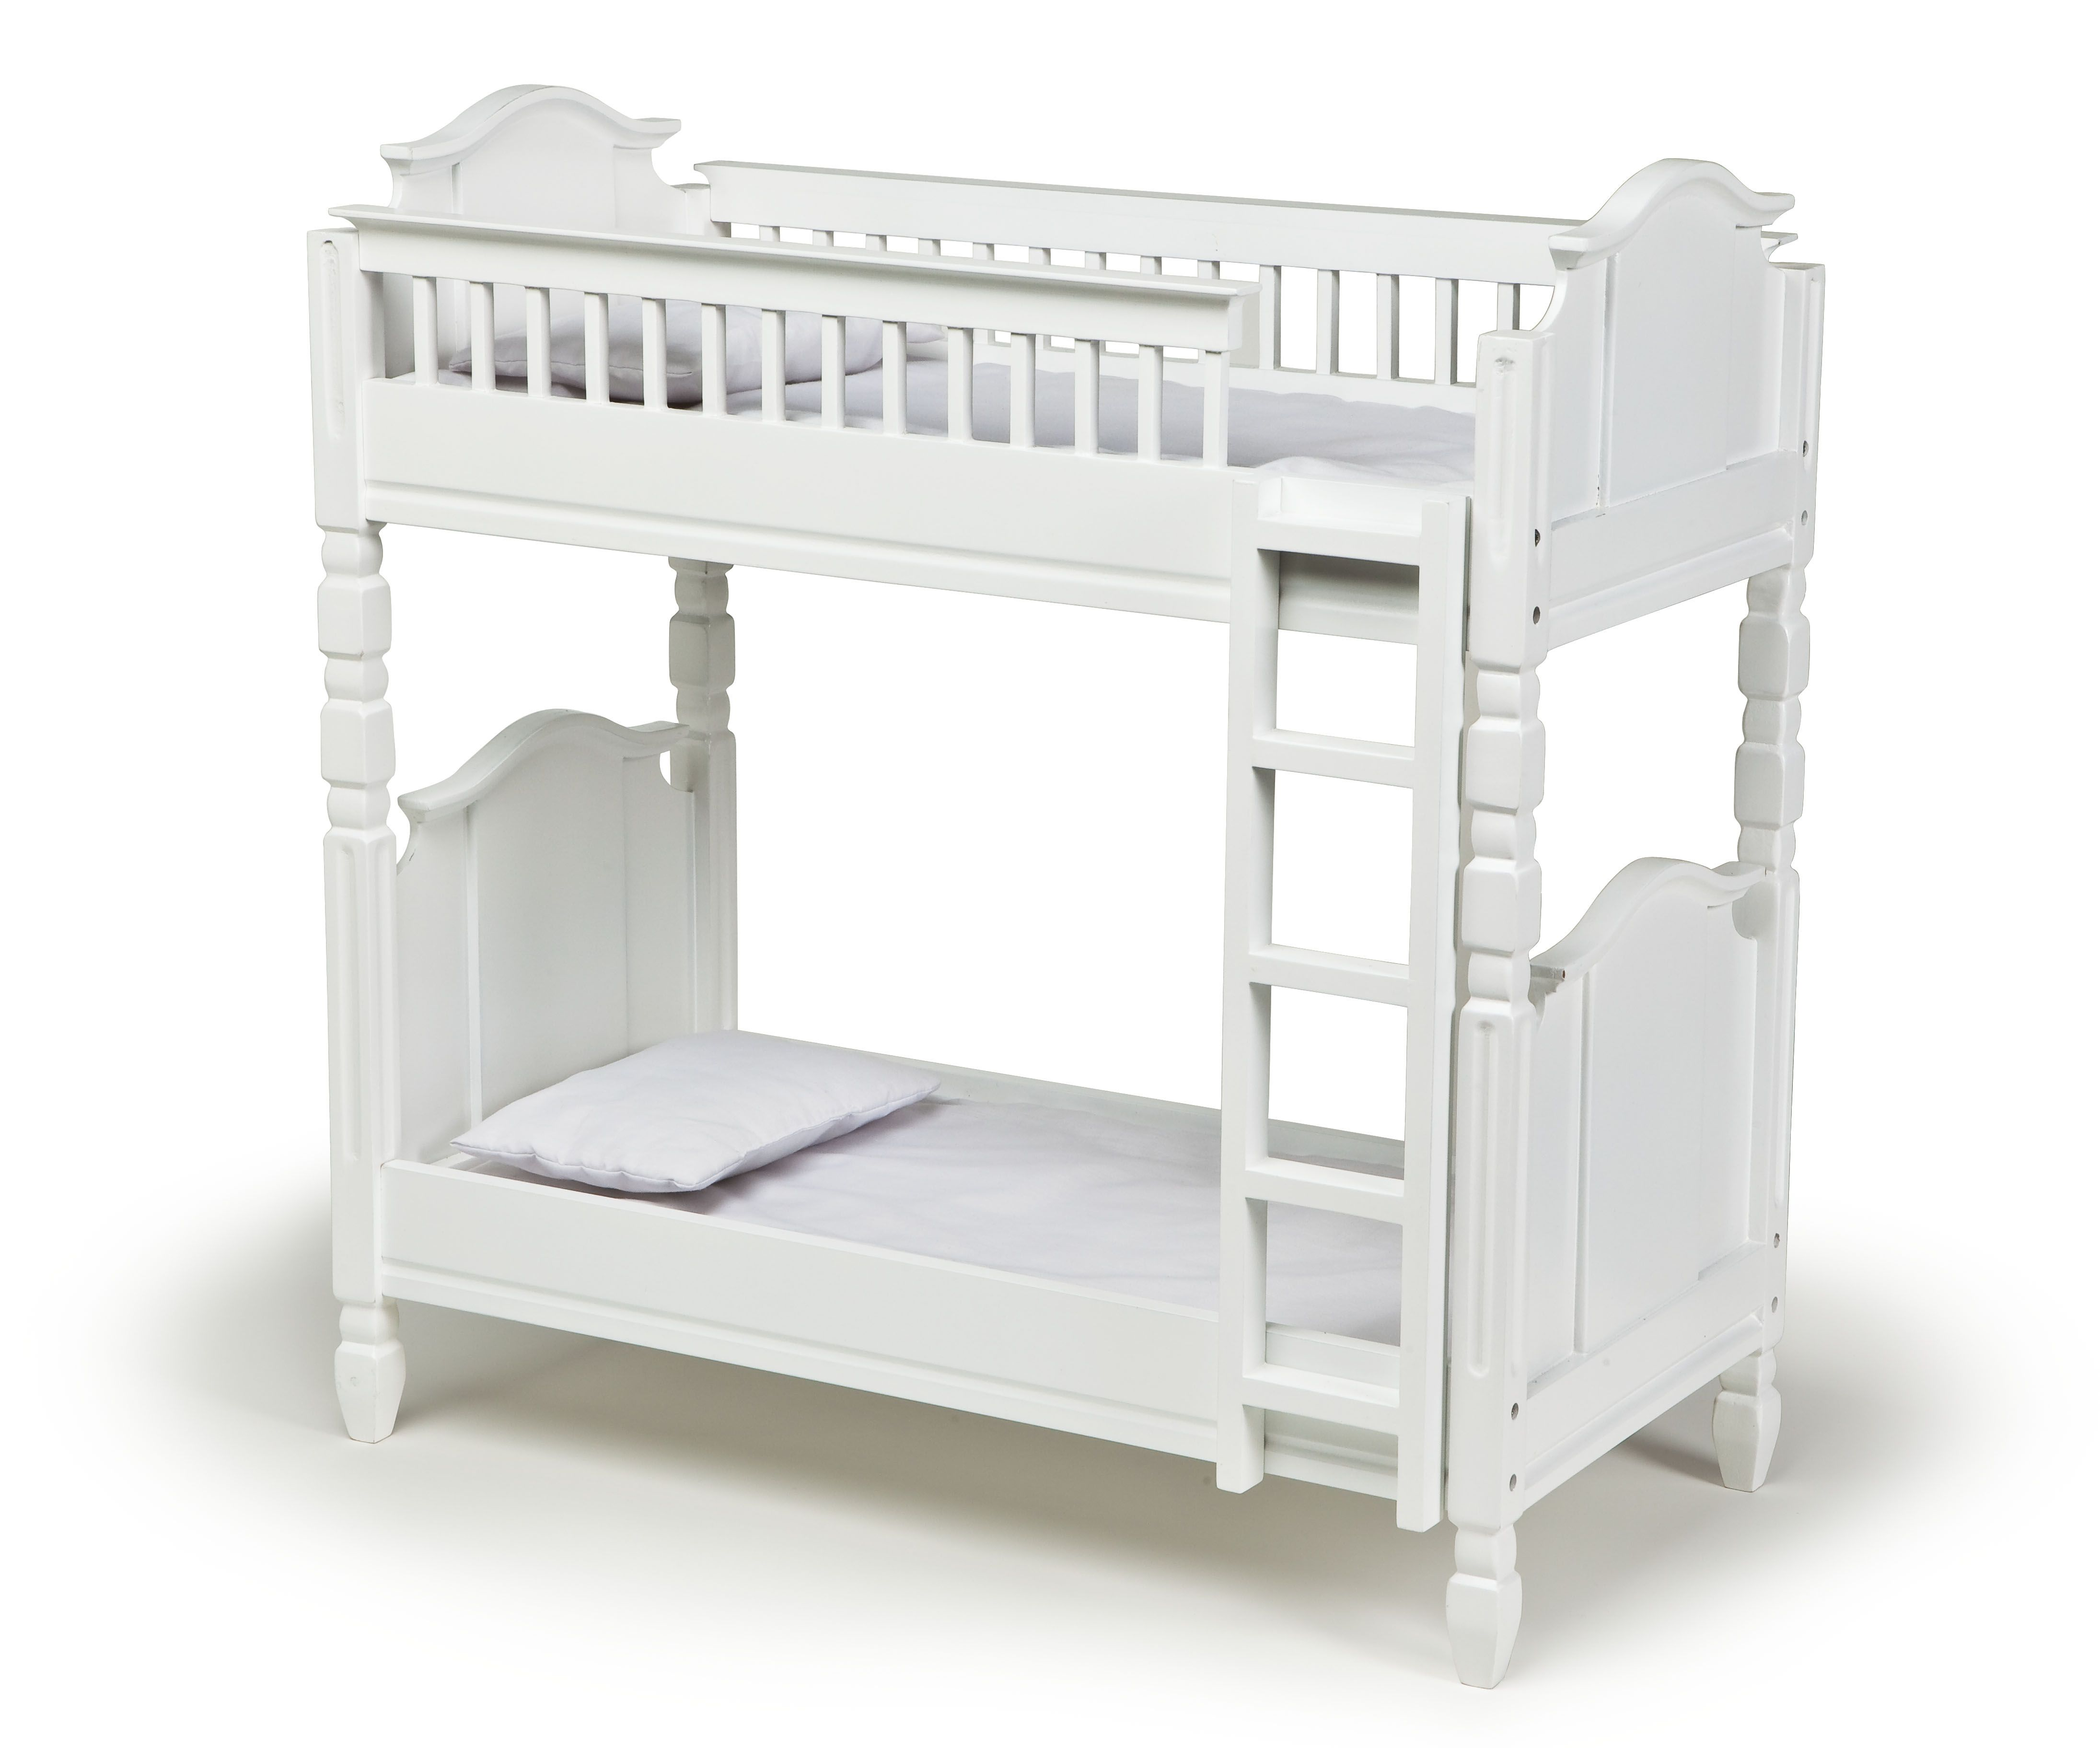 doll bunk bed elegant contemporary designed bunk bed which puts